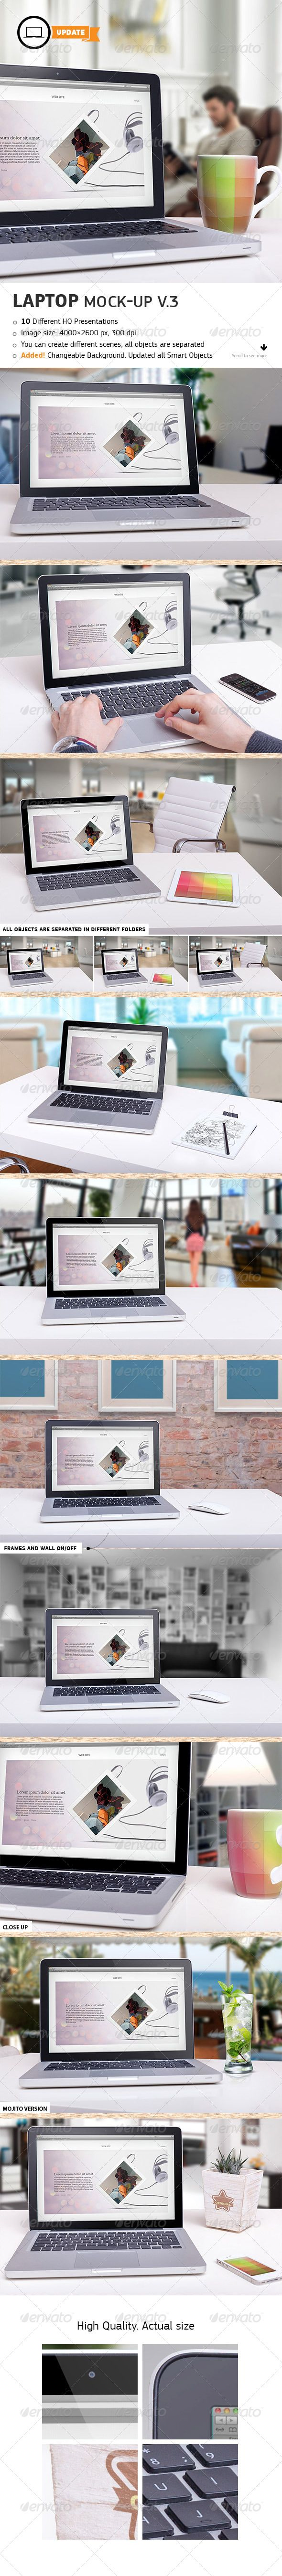 10 Laptop Mock-ups Vol.3 - Laptop Displays